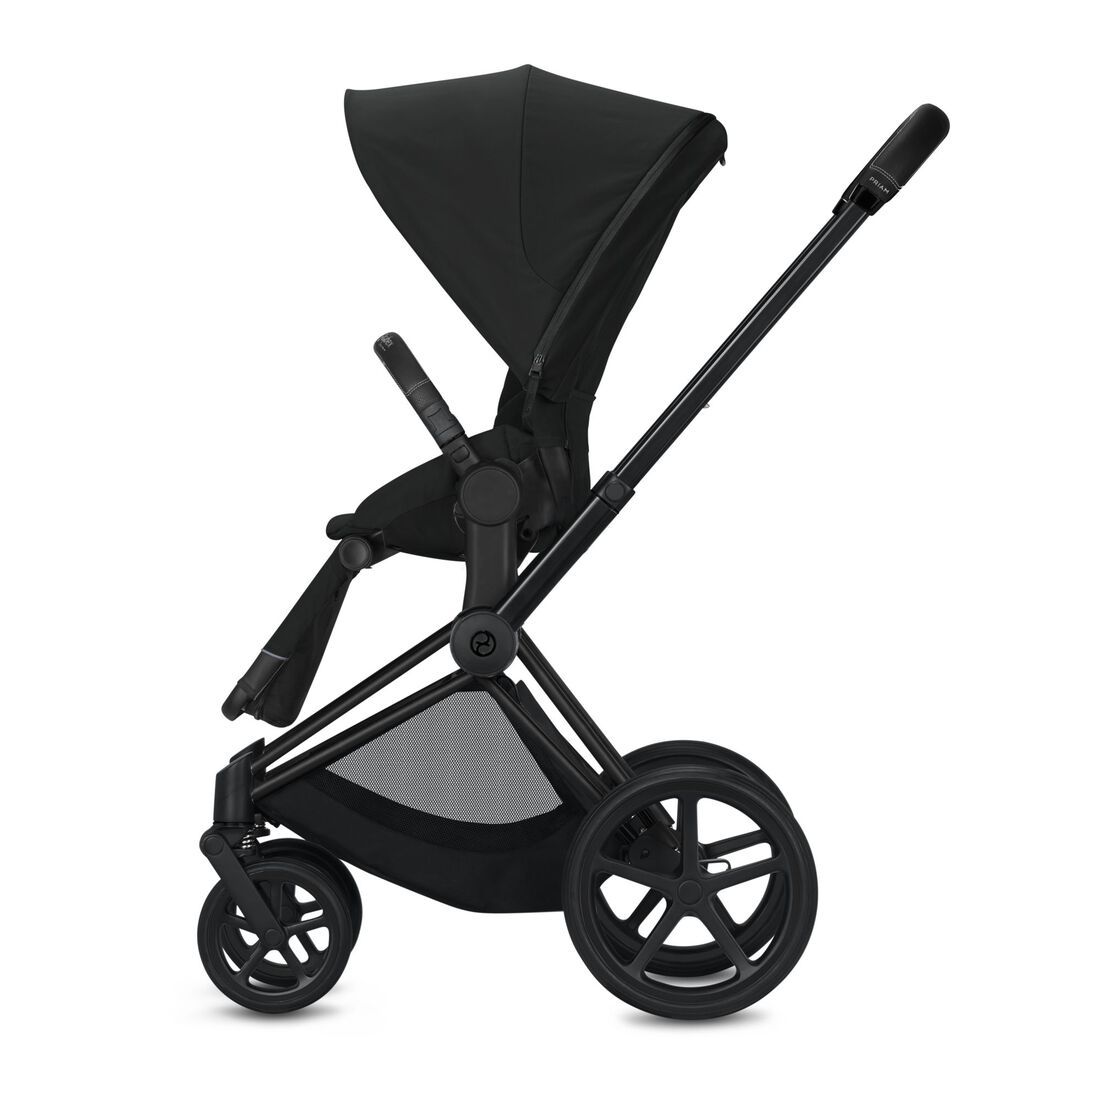 CYBEX Priam Rahmen - Matt Black in Matt Black large Bild 3